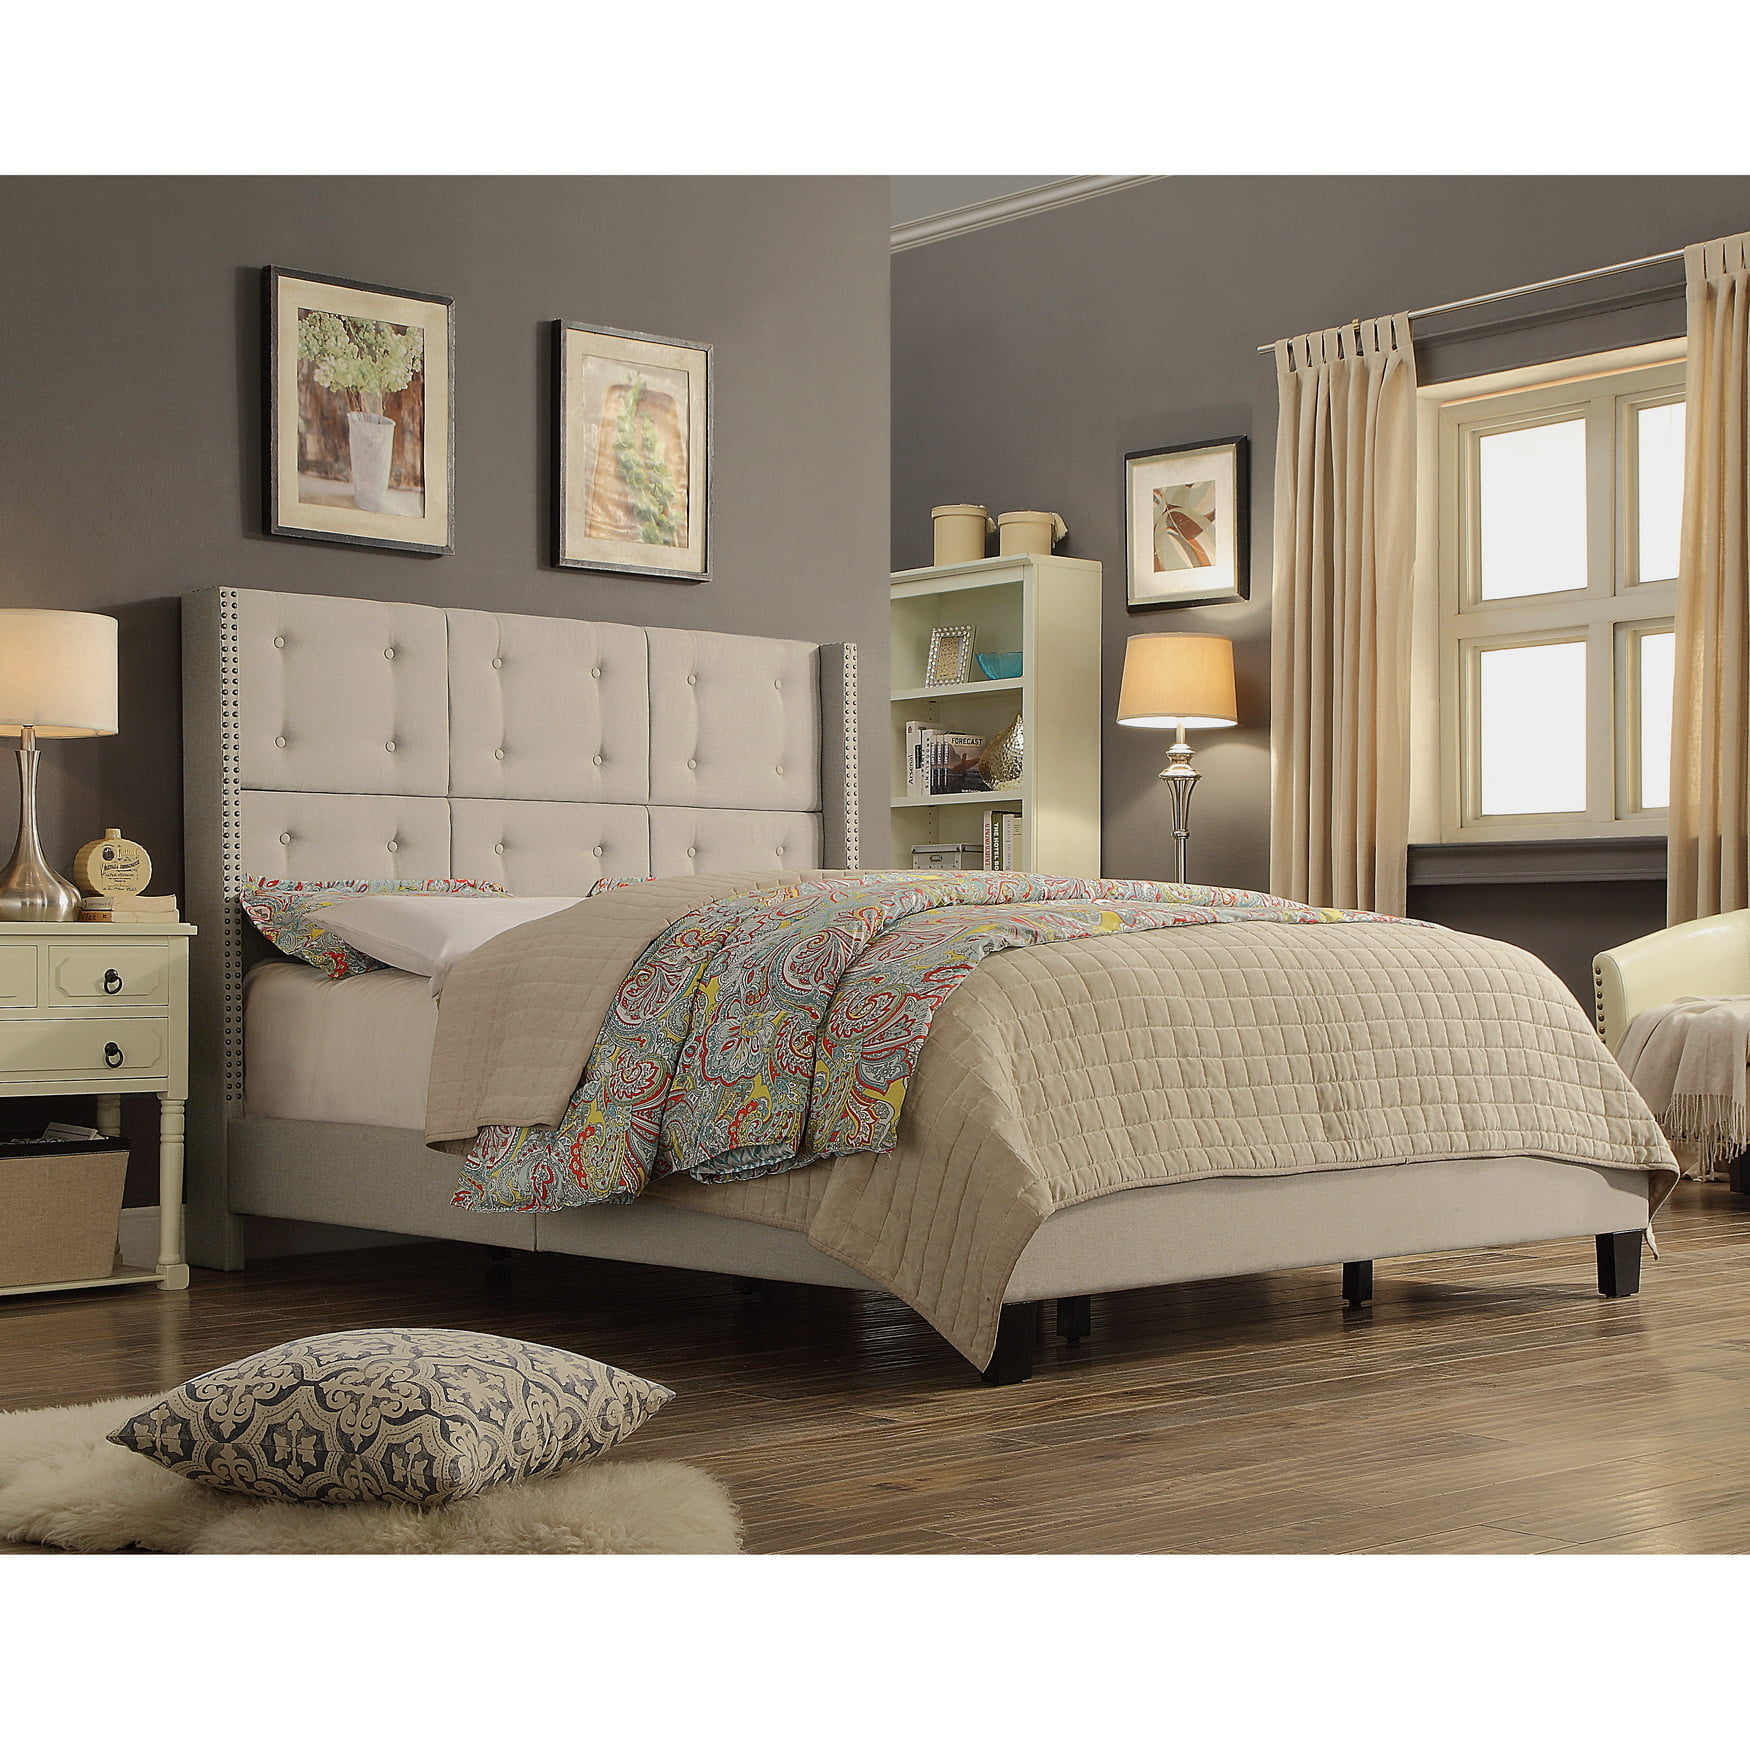 Alton Furniture Ciosa Upholstered Button Tufted Panel Bed With Headboard  And Wooden Slats, Multiple Colors/Sizes   Walmart.com